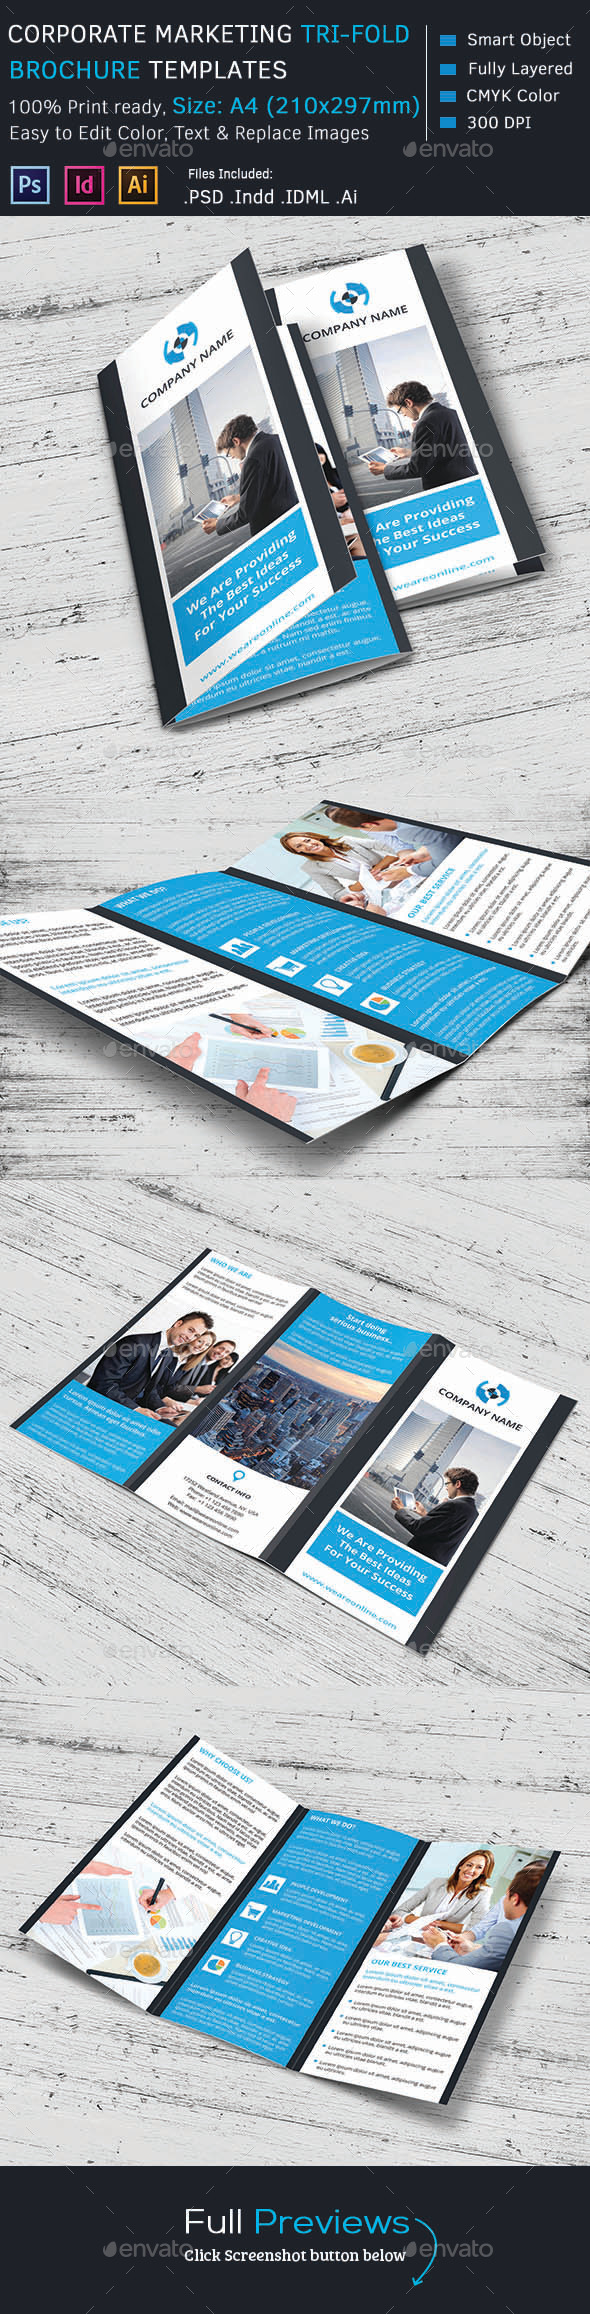 GraphicRiver Corporate Marketing Tri-Fold Brochure 10337021